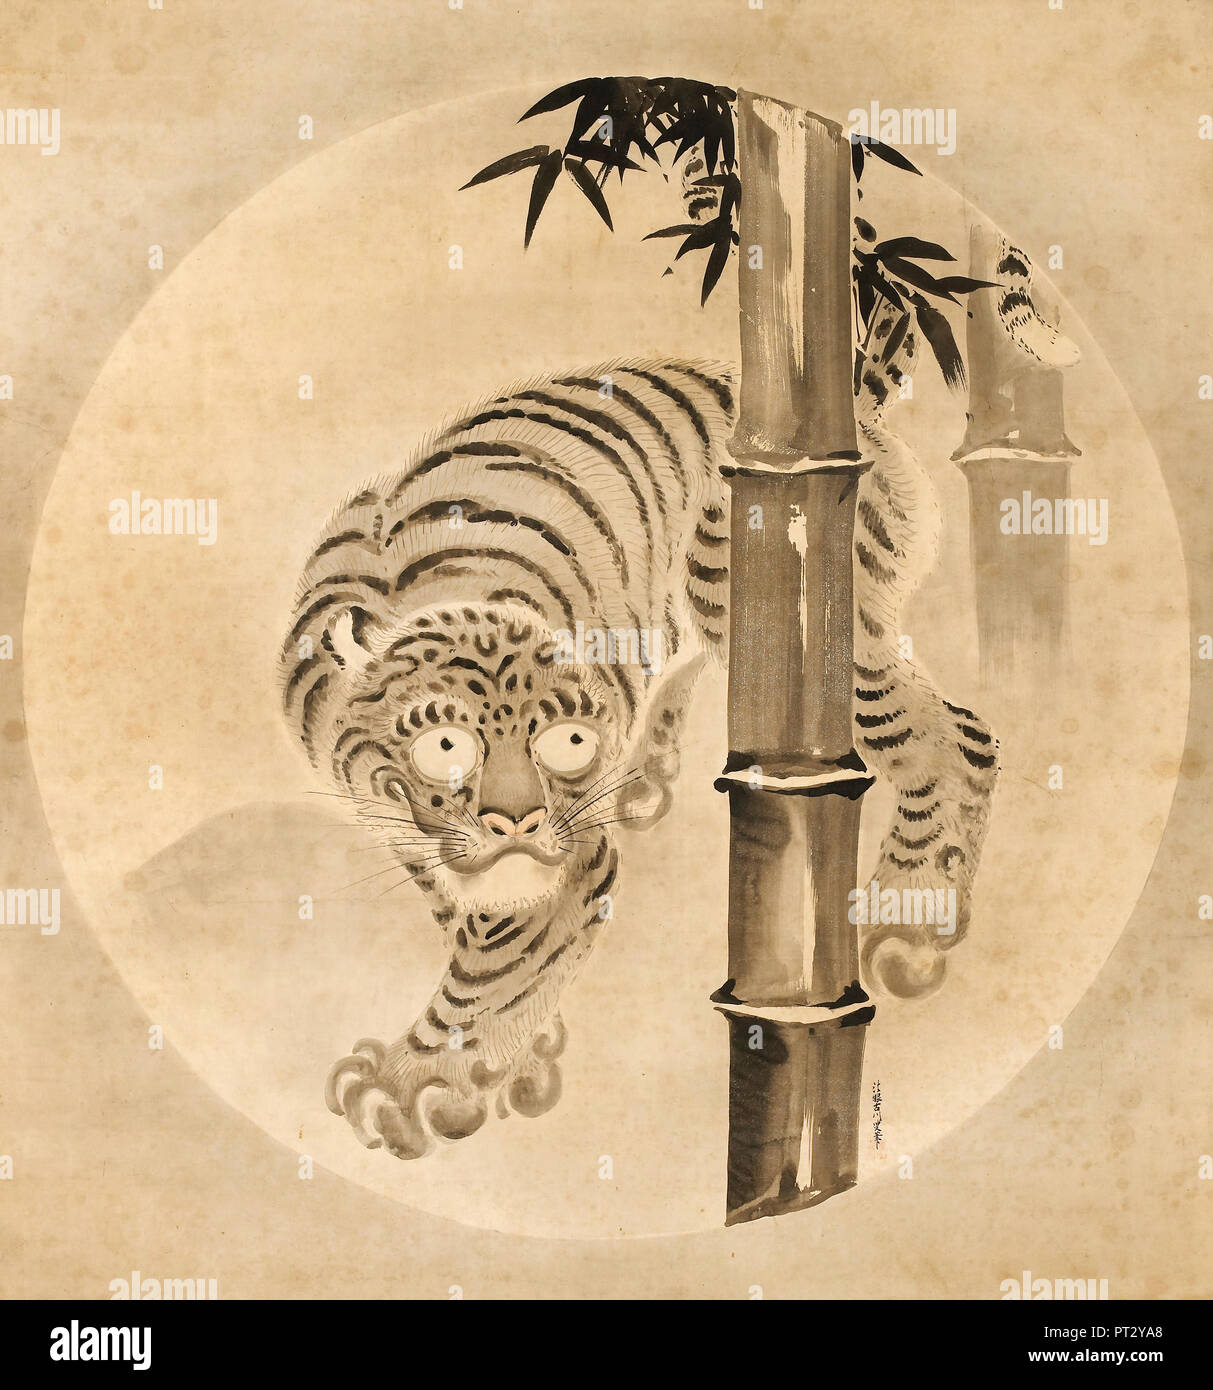 Kano Tsunenobu, Tiger Emerging from Bamboo, Circa 1704-1713, Ink and color on paper, Minneapolis Institute of Arts, USA. - Stock Image